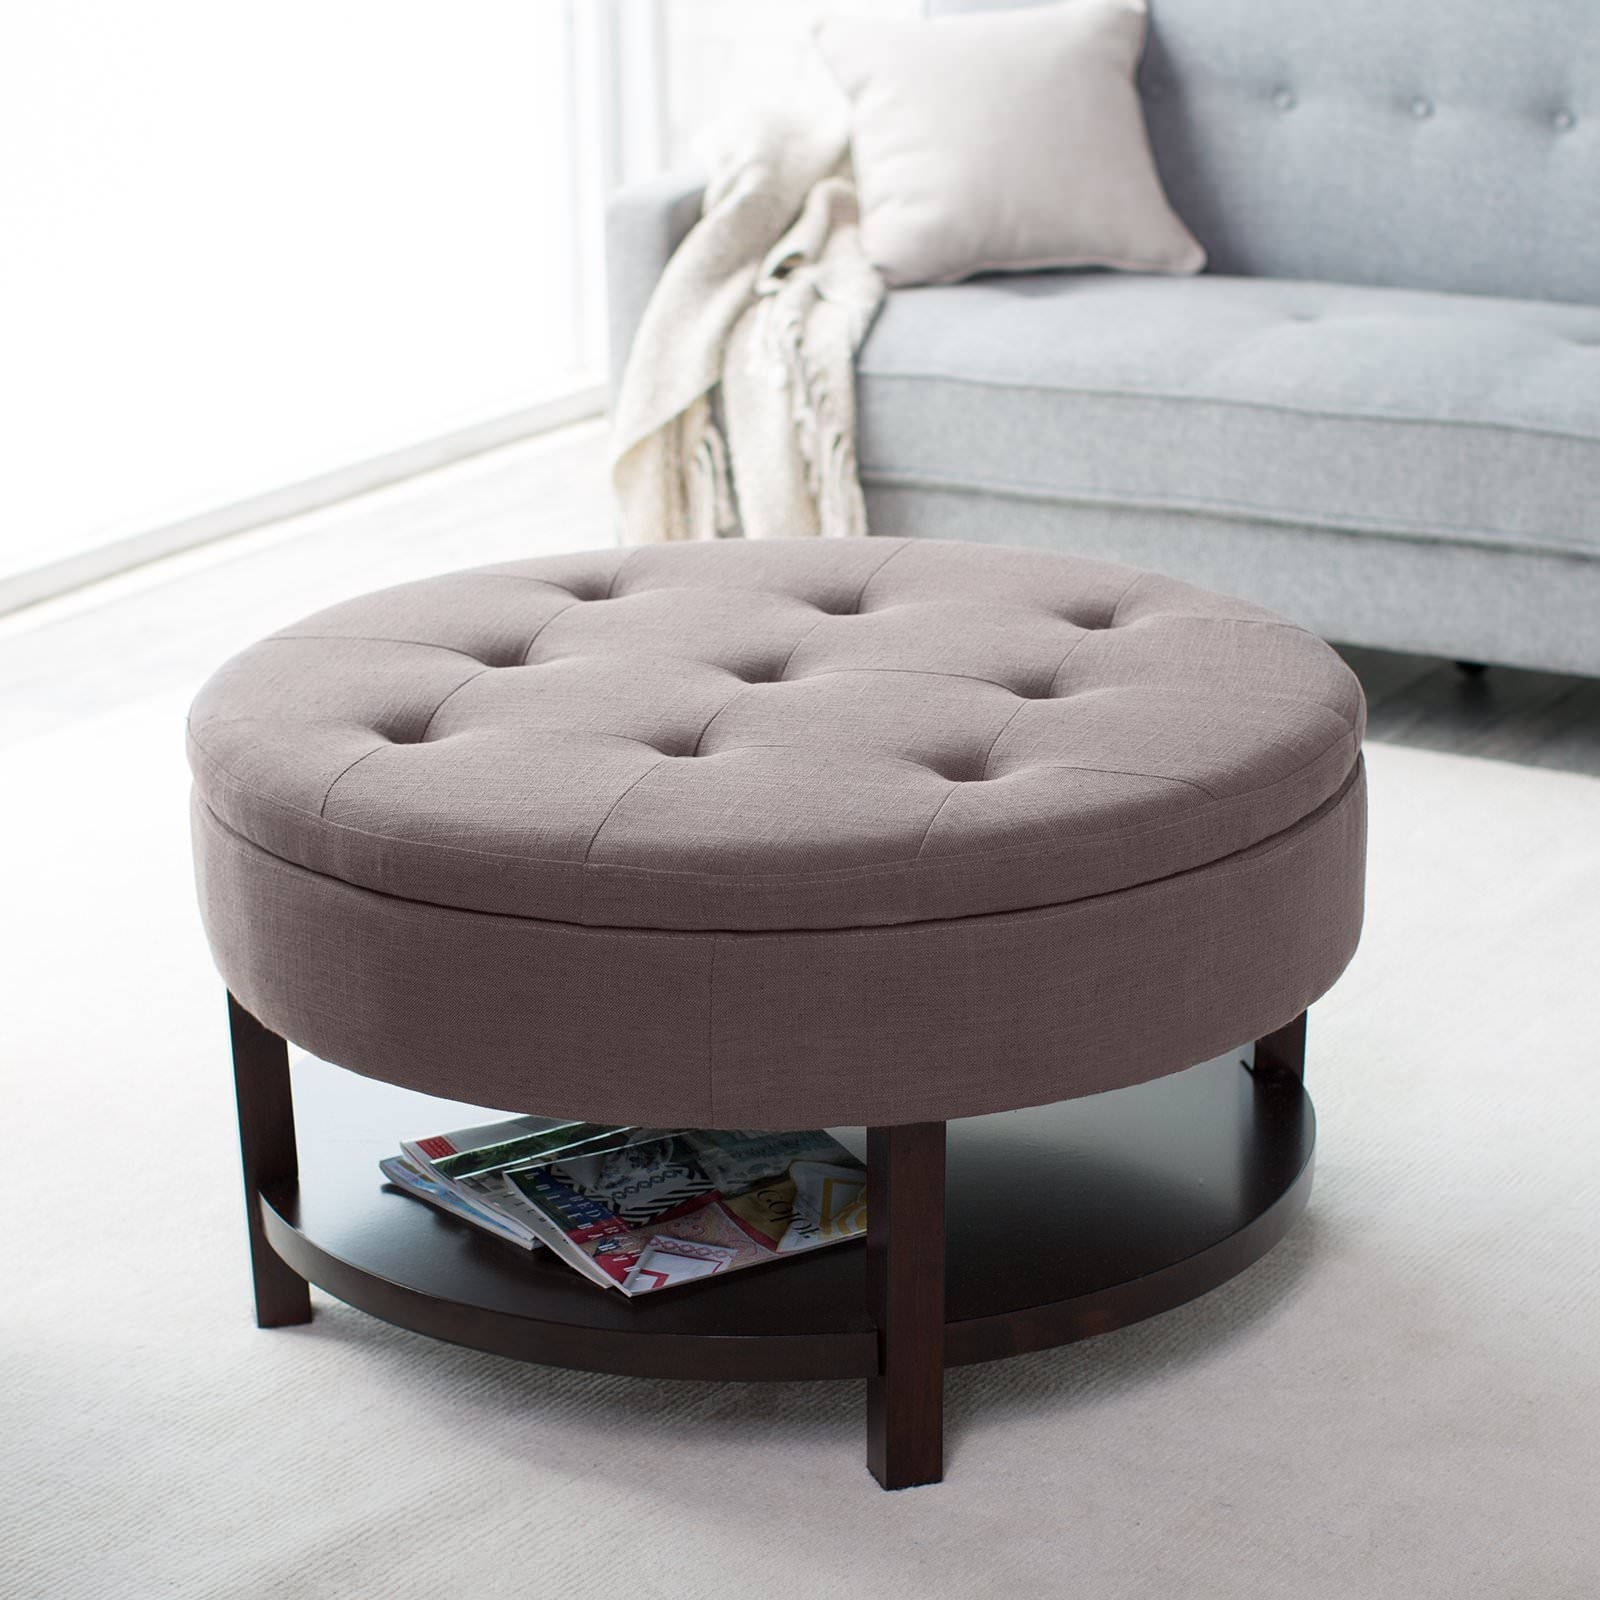 Preferred Round Button Tufted Coffee Tables Within Round Fabric Ottoman Coffee Table — Sushi Ichimura Decor (View 3 of 20)